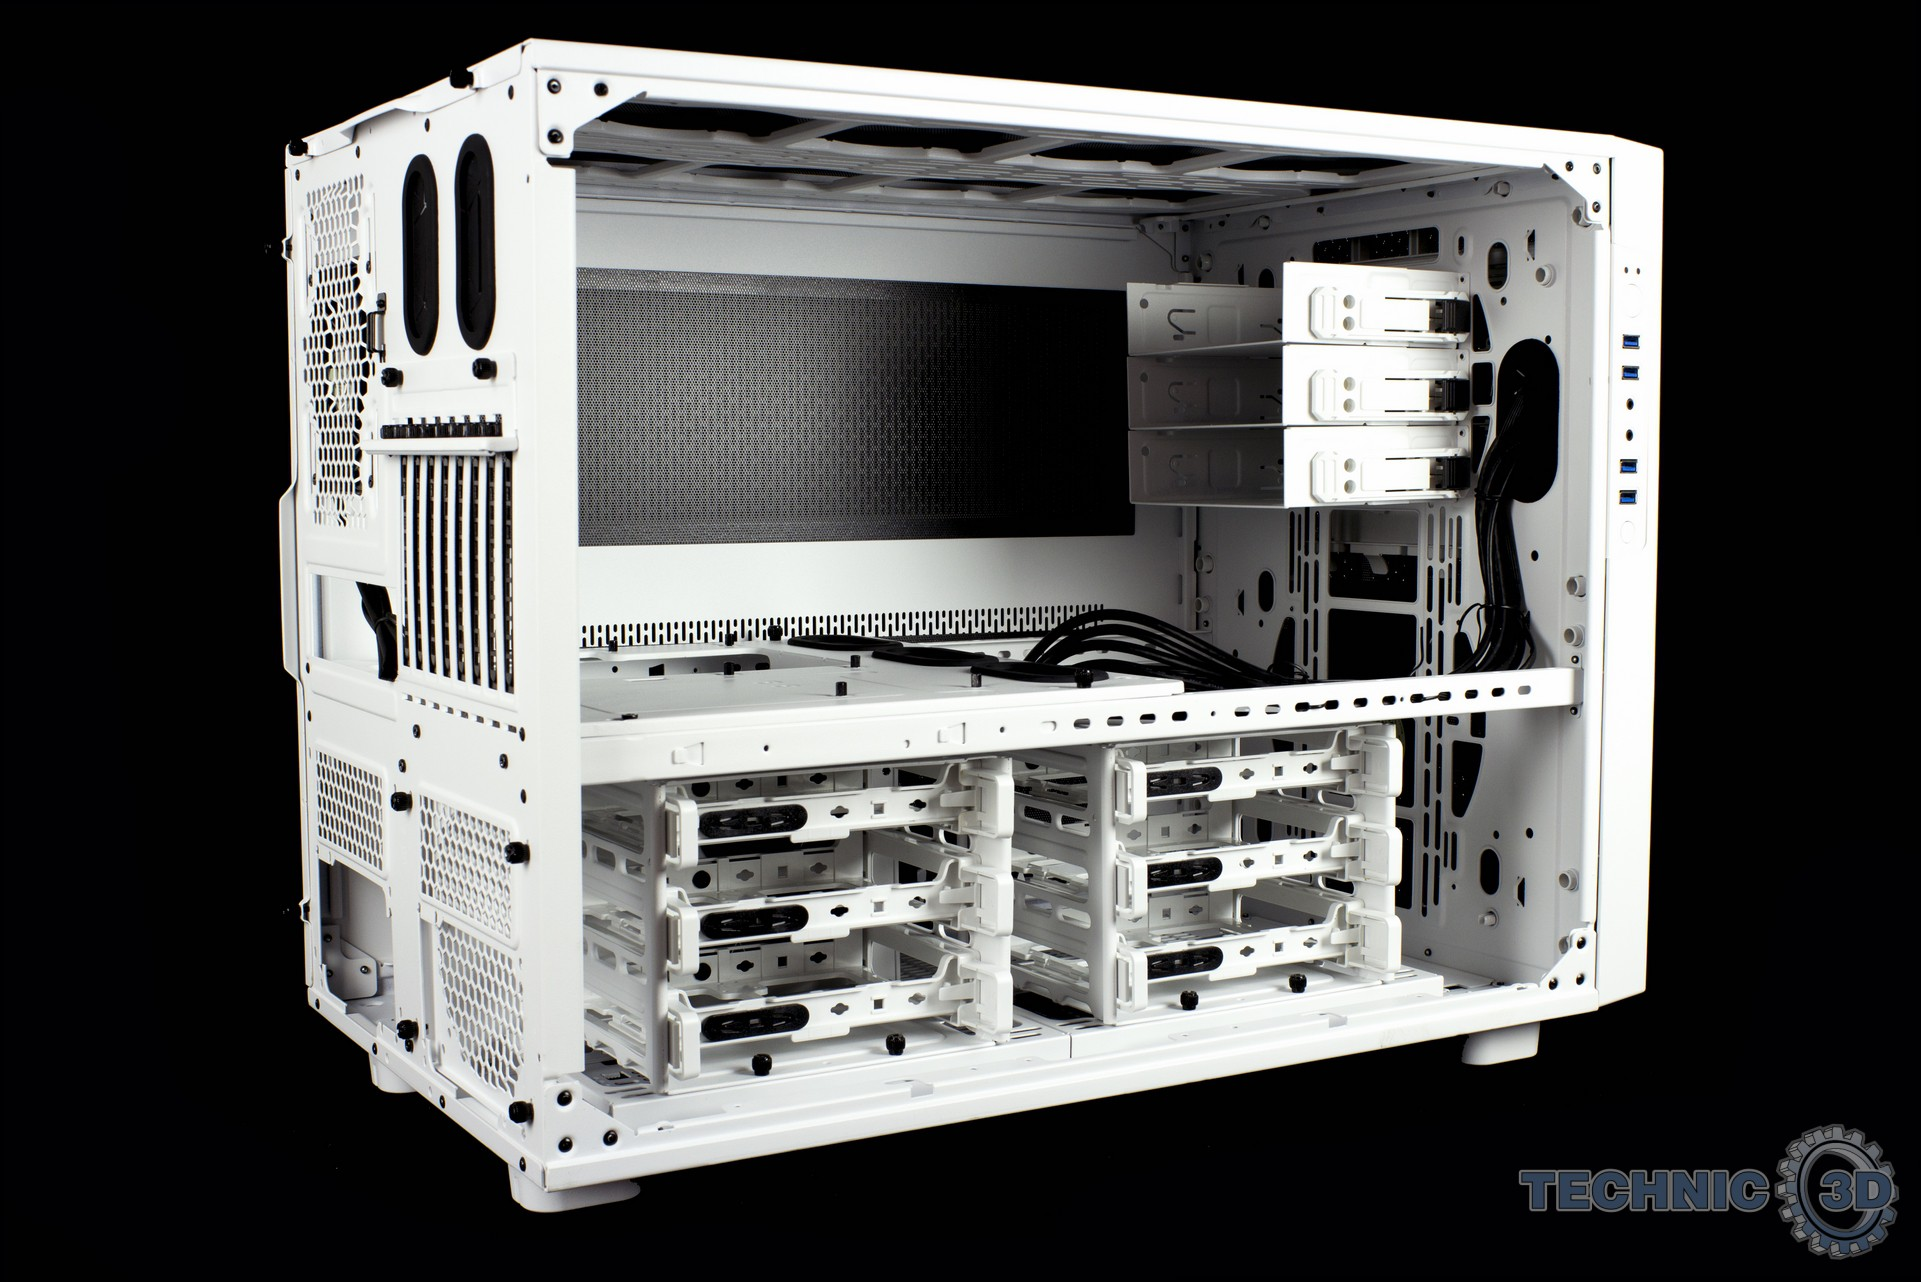 thermaltake core x9 snow editon geh use im test seite 2 review technic3d. Black Bedroom Furniture Sets. Home Design Ideas